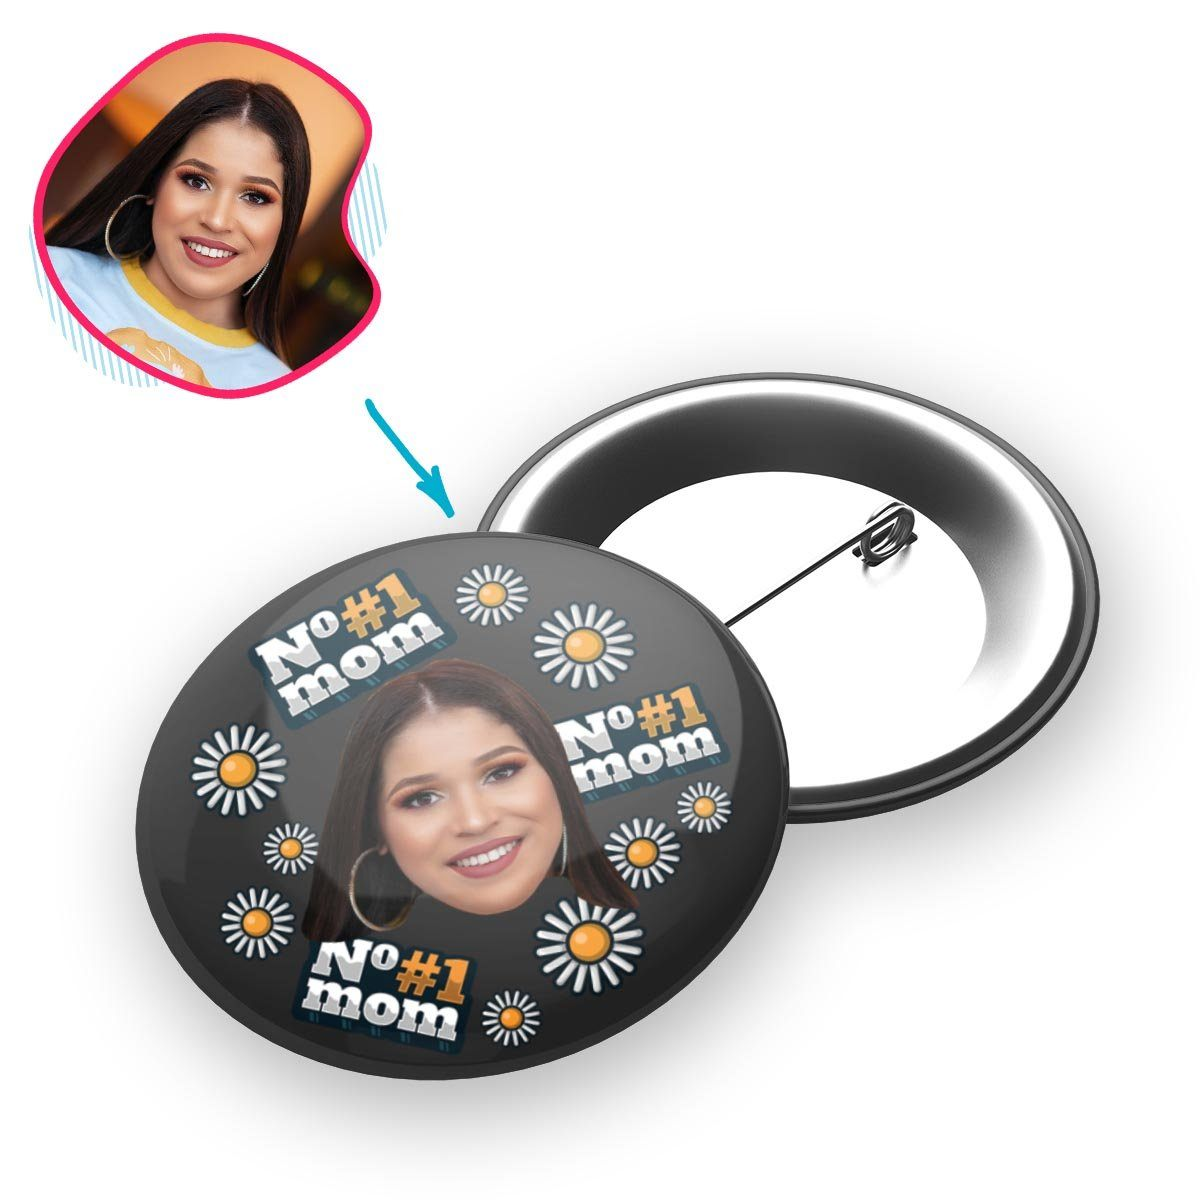 dark #1 Mom pin personalized with photo of face printed on it